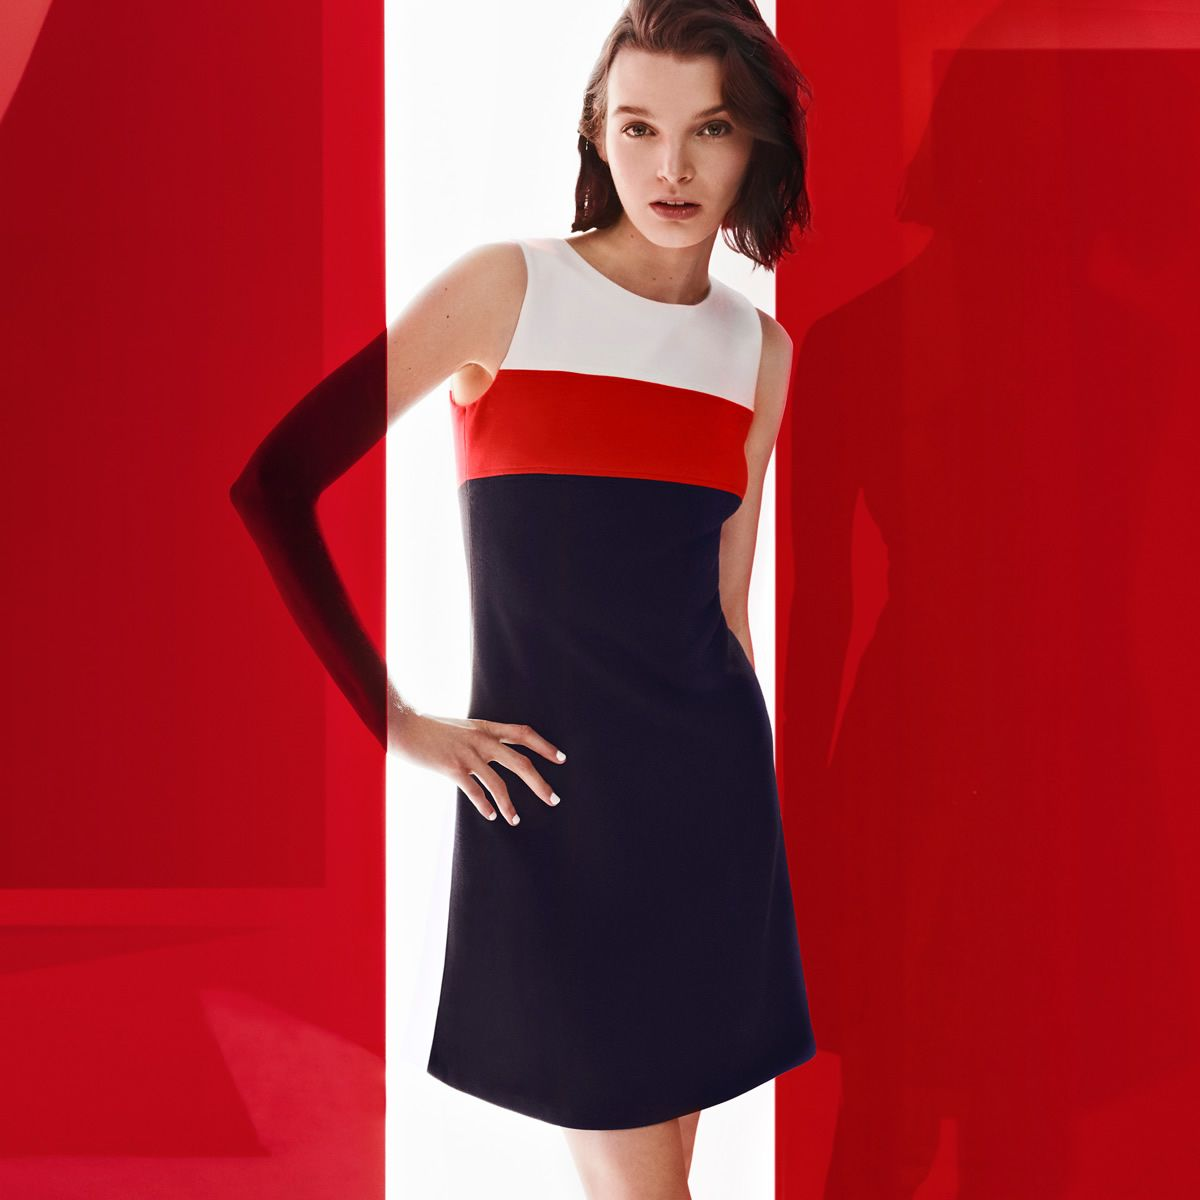 b05b8ec6e0 Tommy Hilfiger Dresses for Women - Macy s